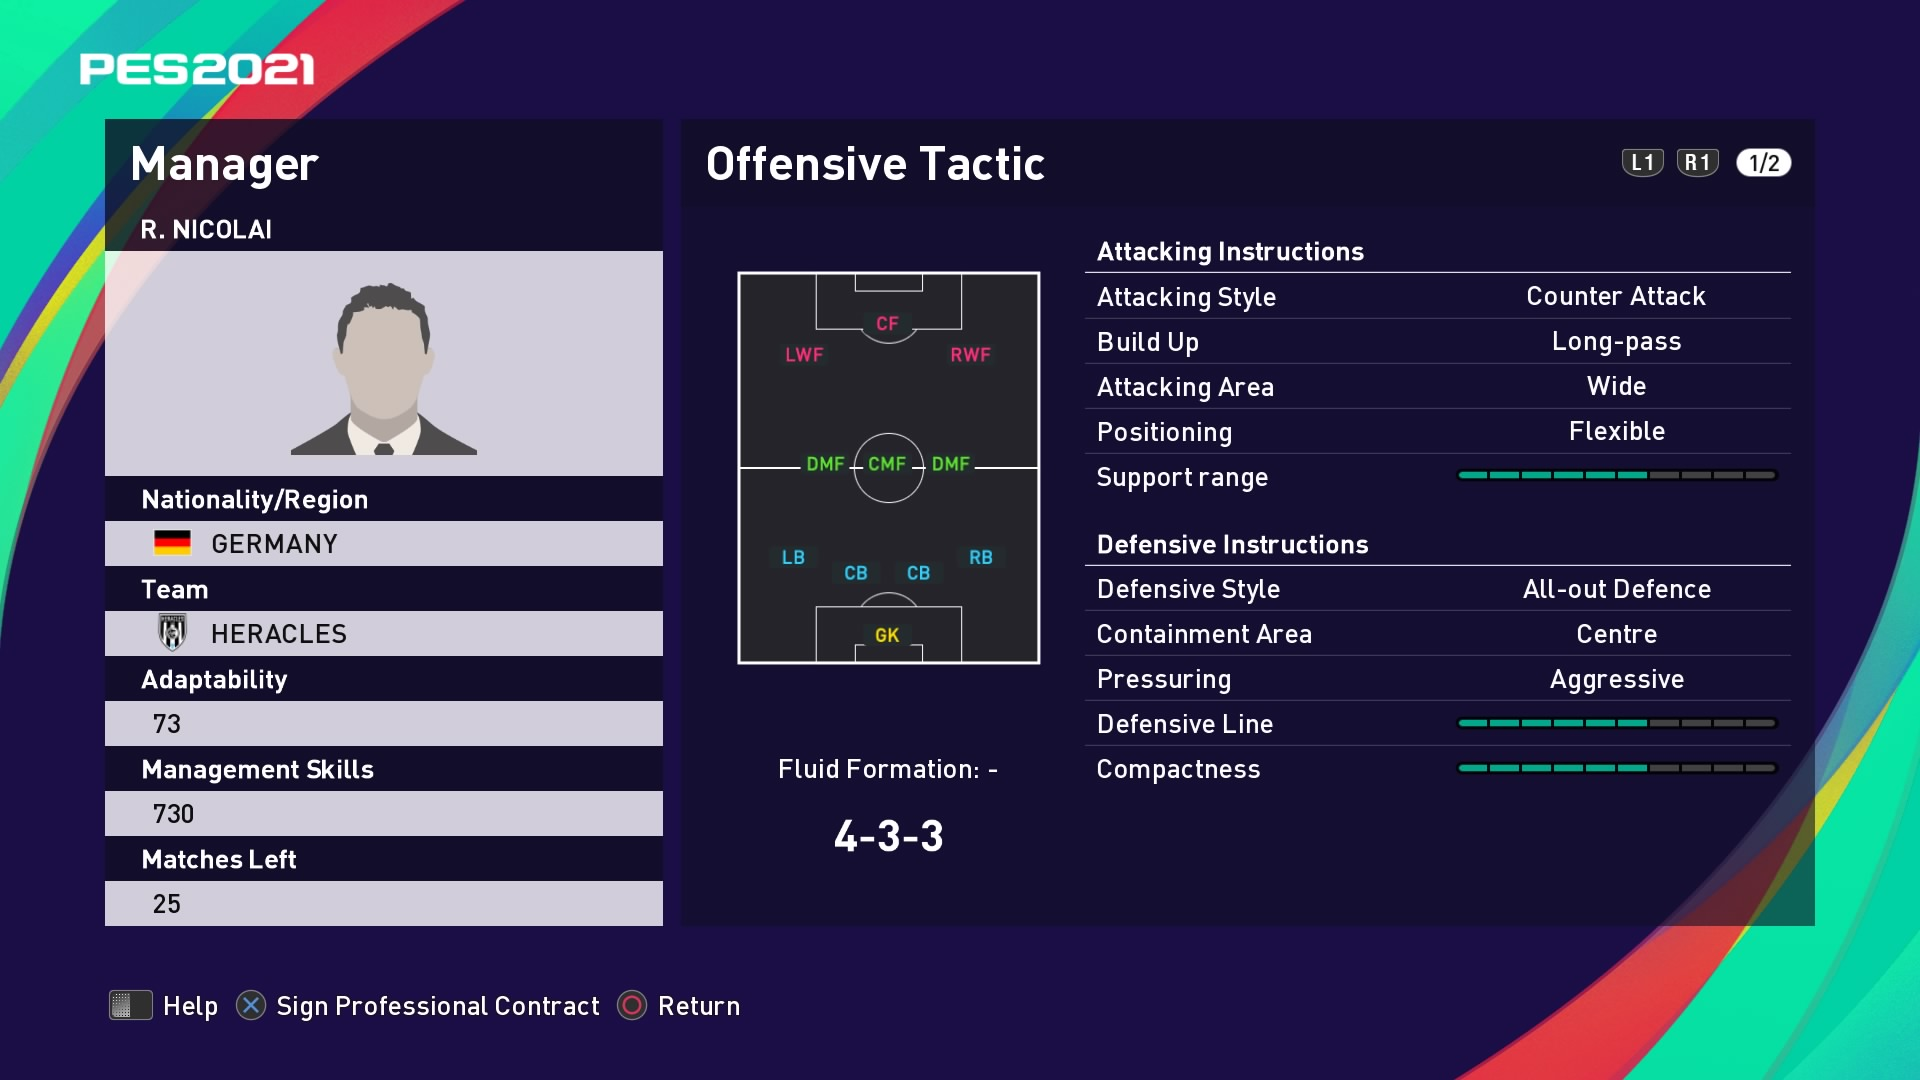 R. Nicolai (Frank Wormuth) Offensive Tactic in PES 2021 myClub